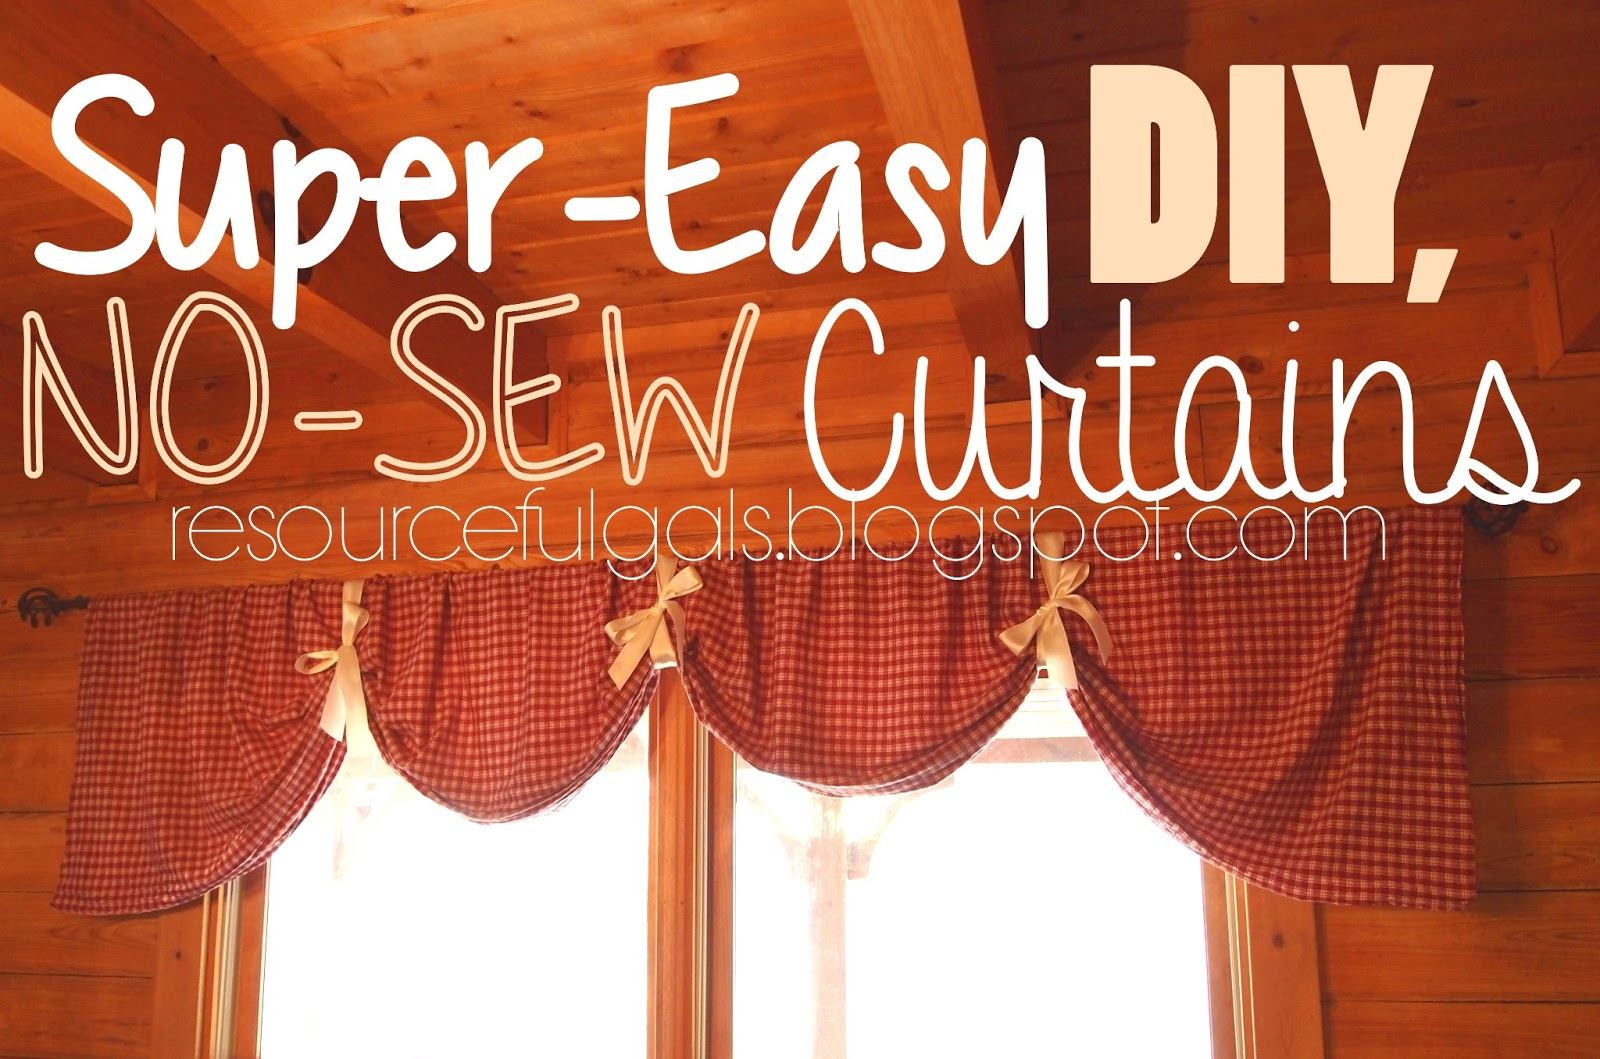 The resourceful gals super easy no sew diy curtains How to make a valance without sewing